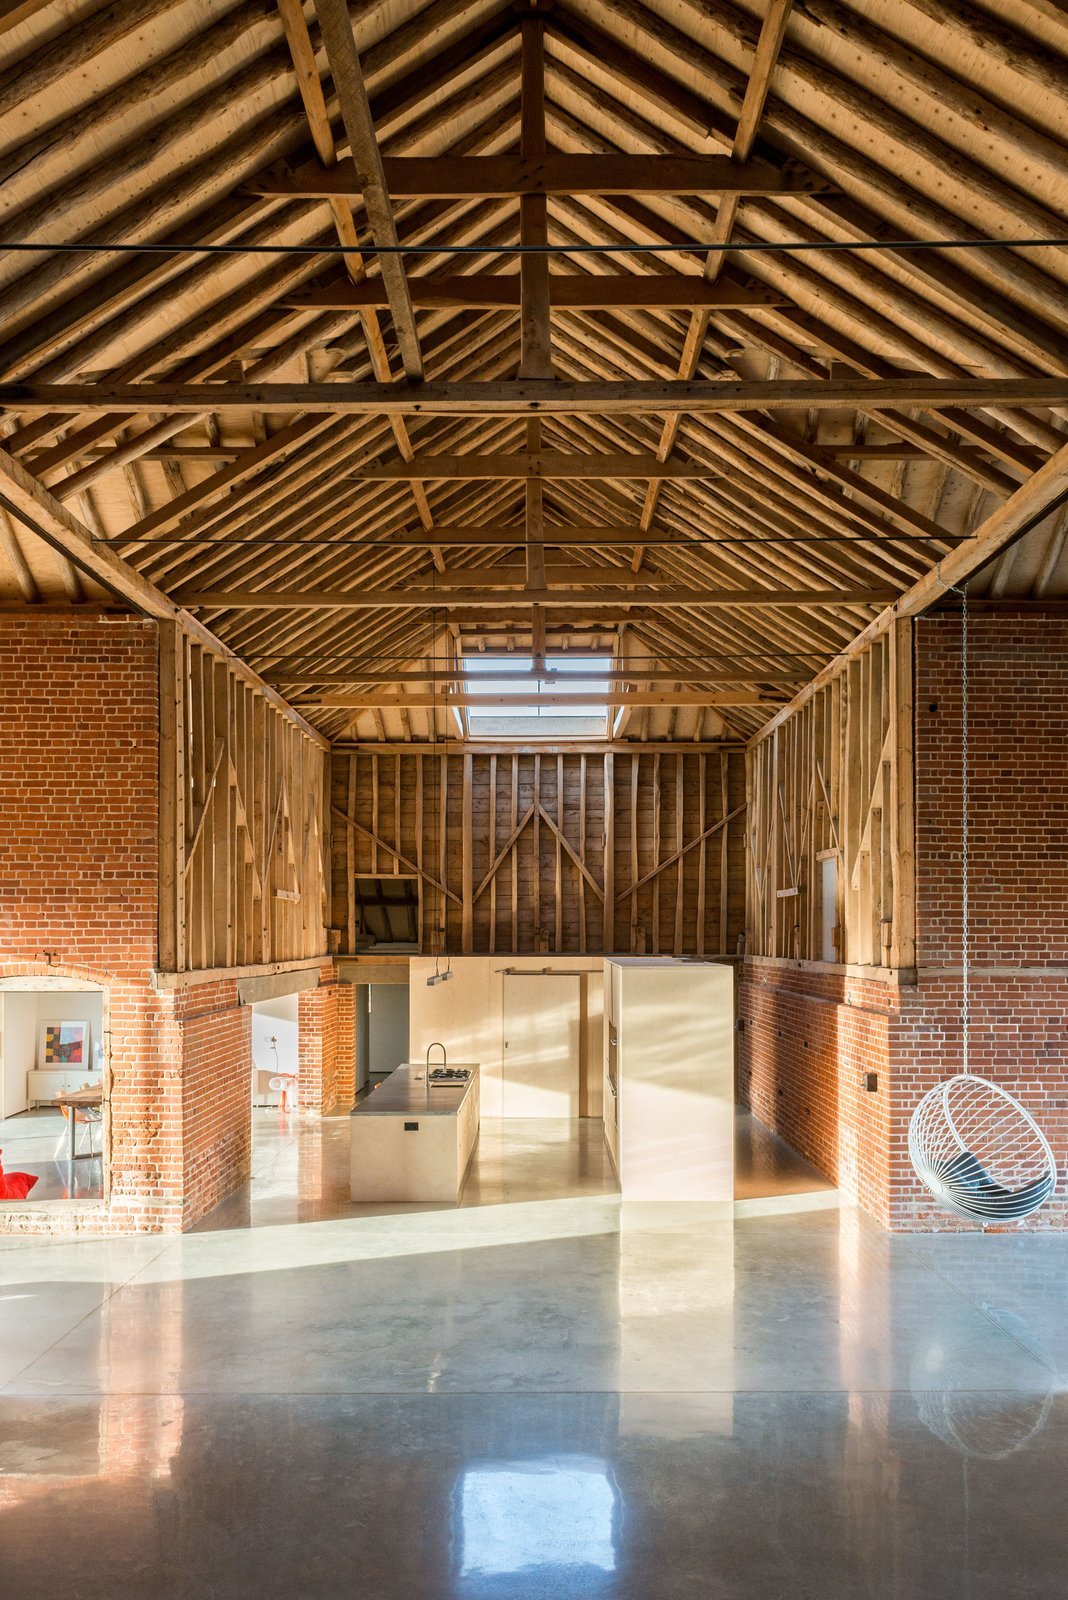 Photo 10 of 10 in A Suffolk Barn Home With Soaring Ceilings Listed at $1.95M